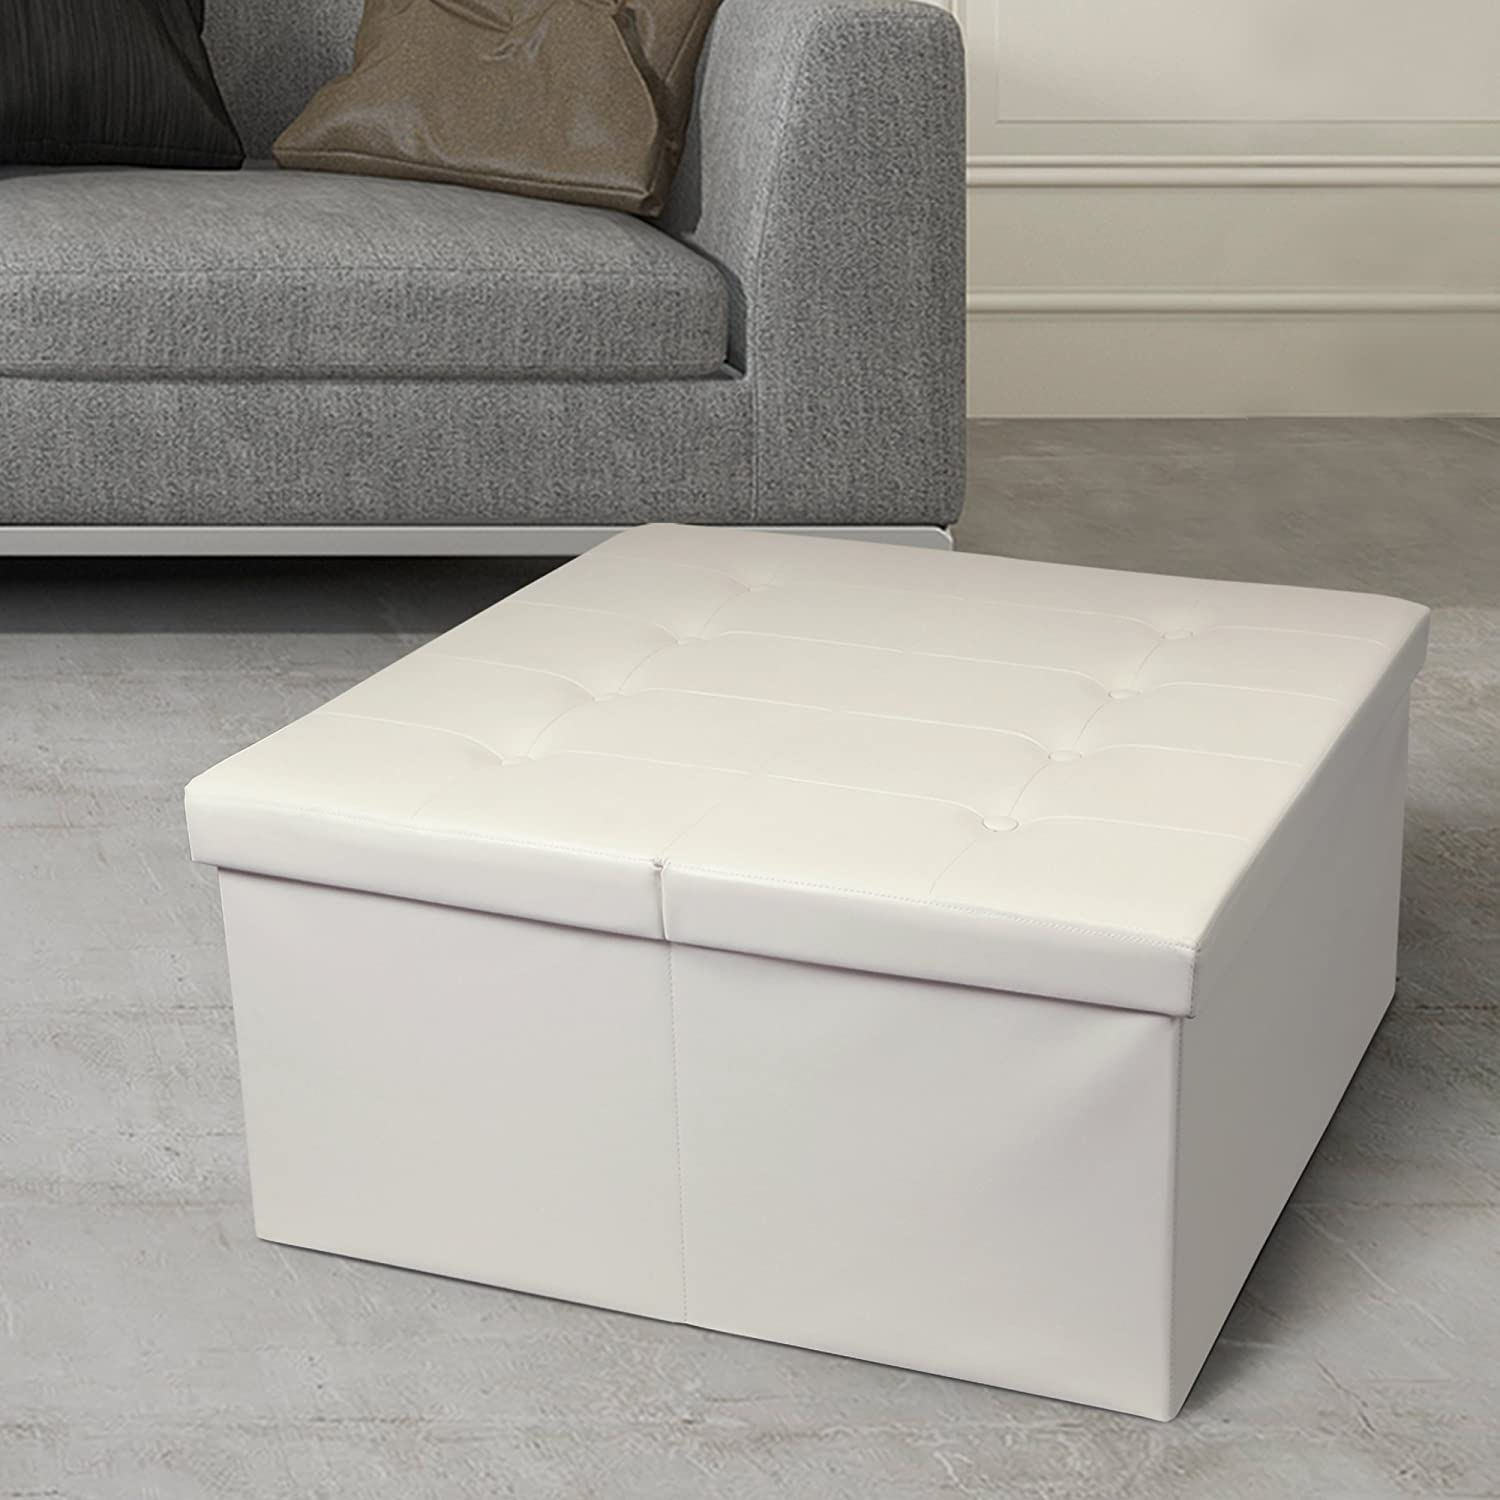 Black Otto /& Ben 30 Storage Coffee Table with Smart Lift Top Folding Round Faux Leather Trunk Ottomans Bench Foot Rest